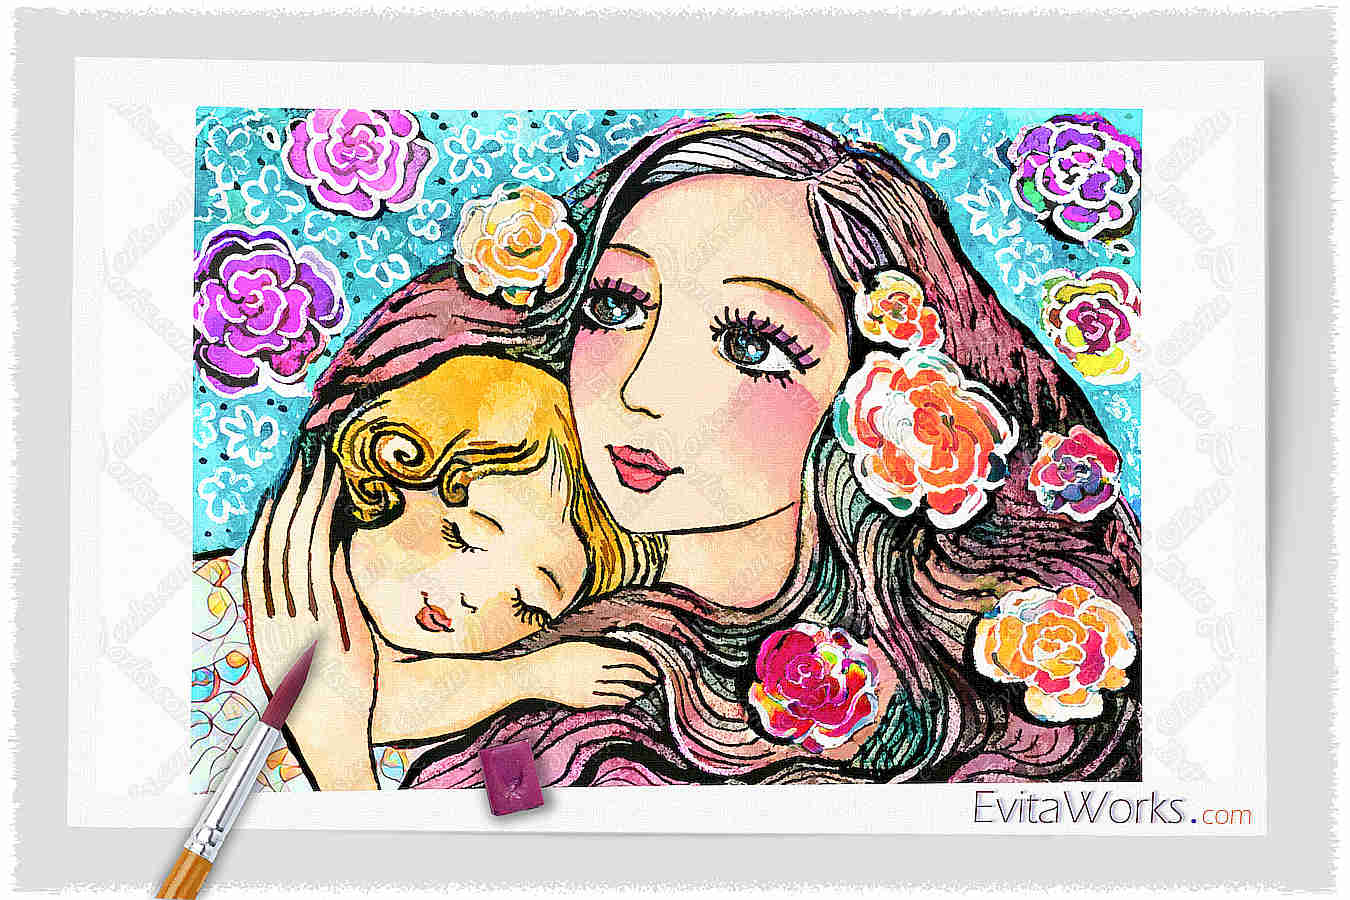 Mother Child 17 ~ EvitaWorks